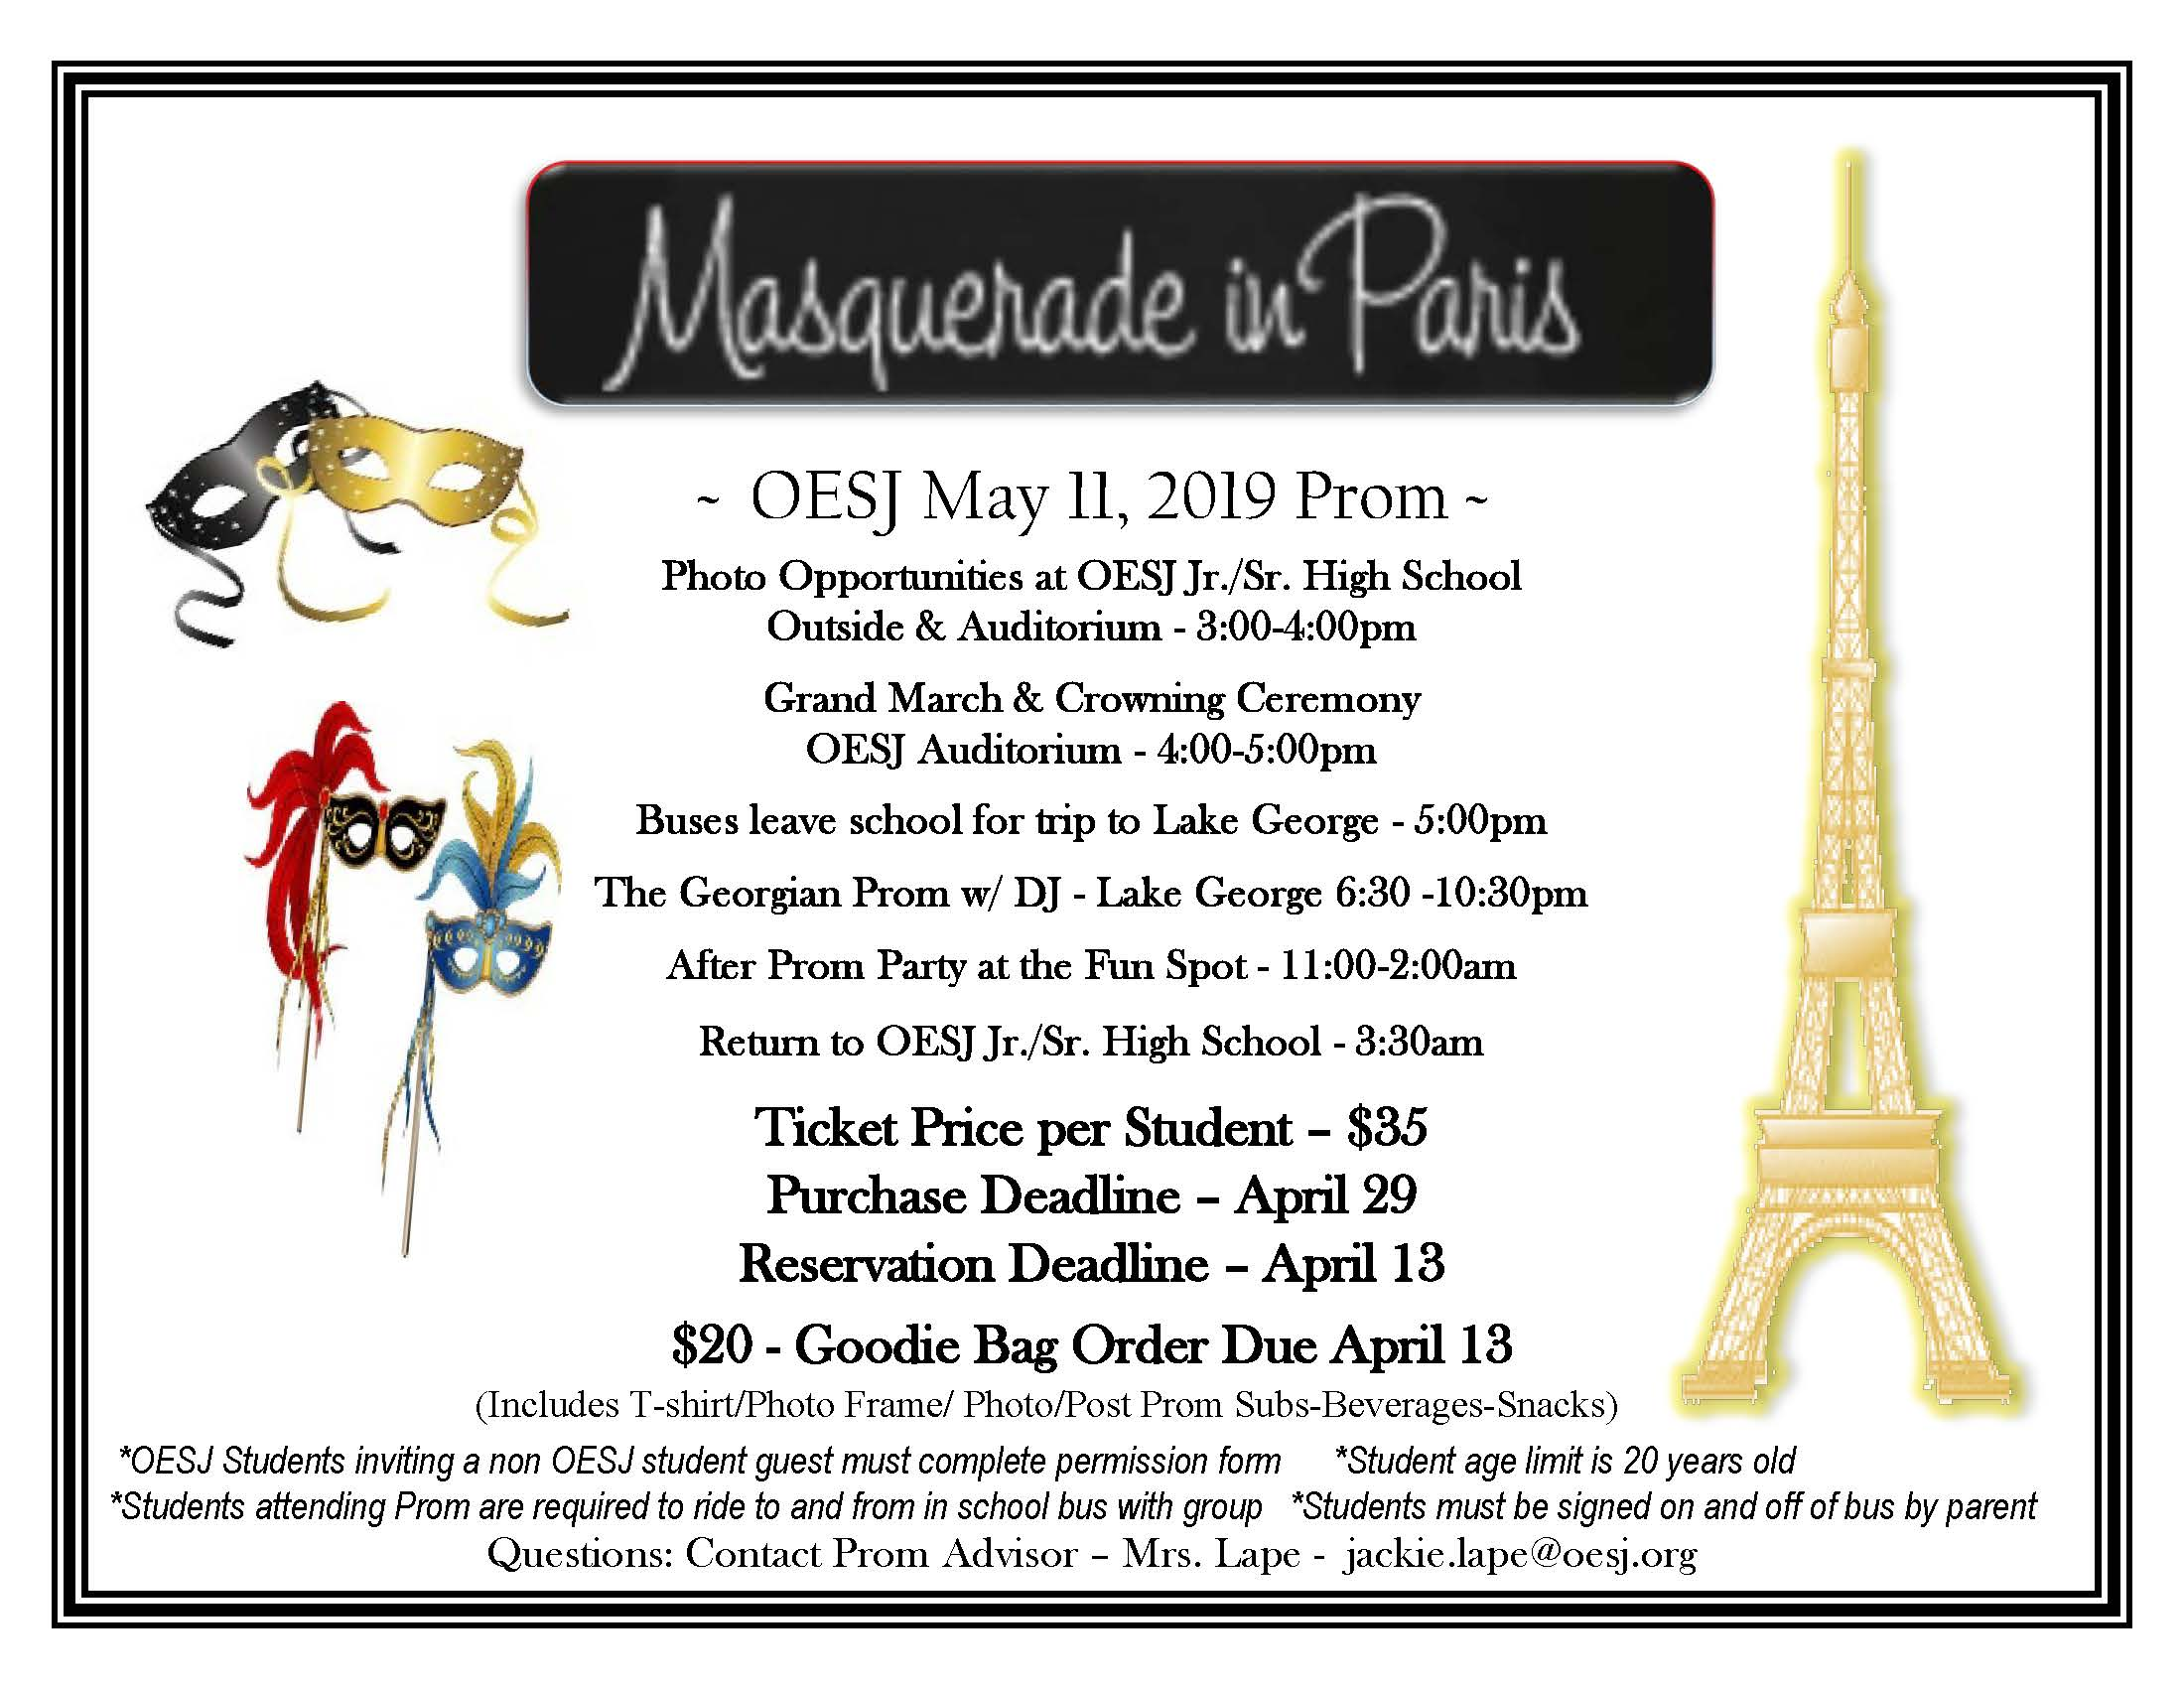 Flyer about the prom at OESJ